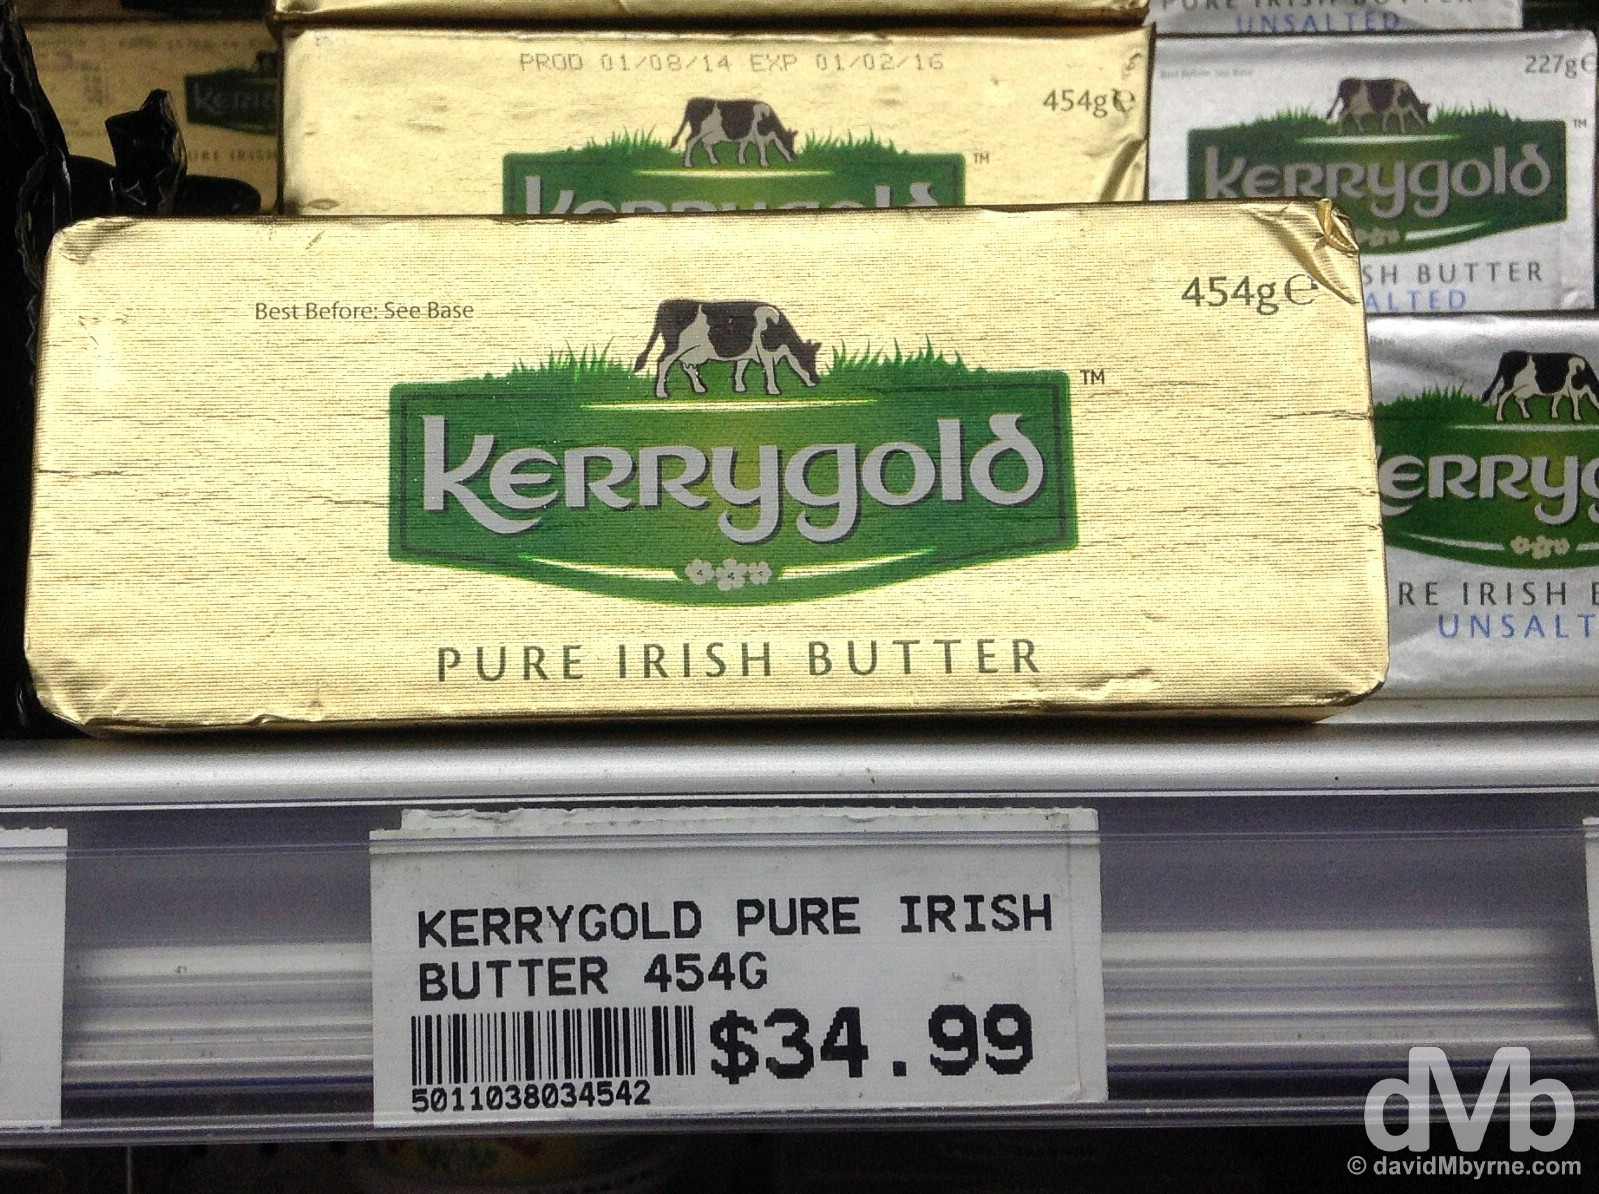 Kerrygold. Port of Spain, Trinidad & Tobago, Lesser Antilles. June 17, 2015.